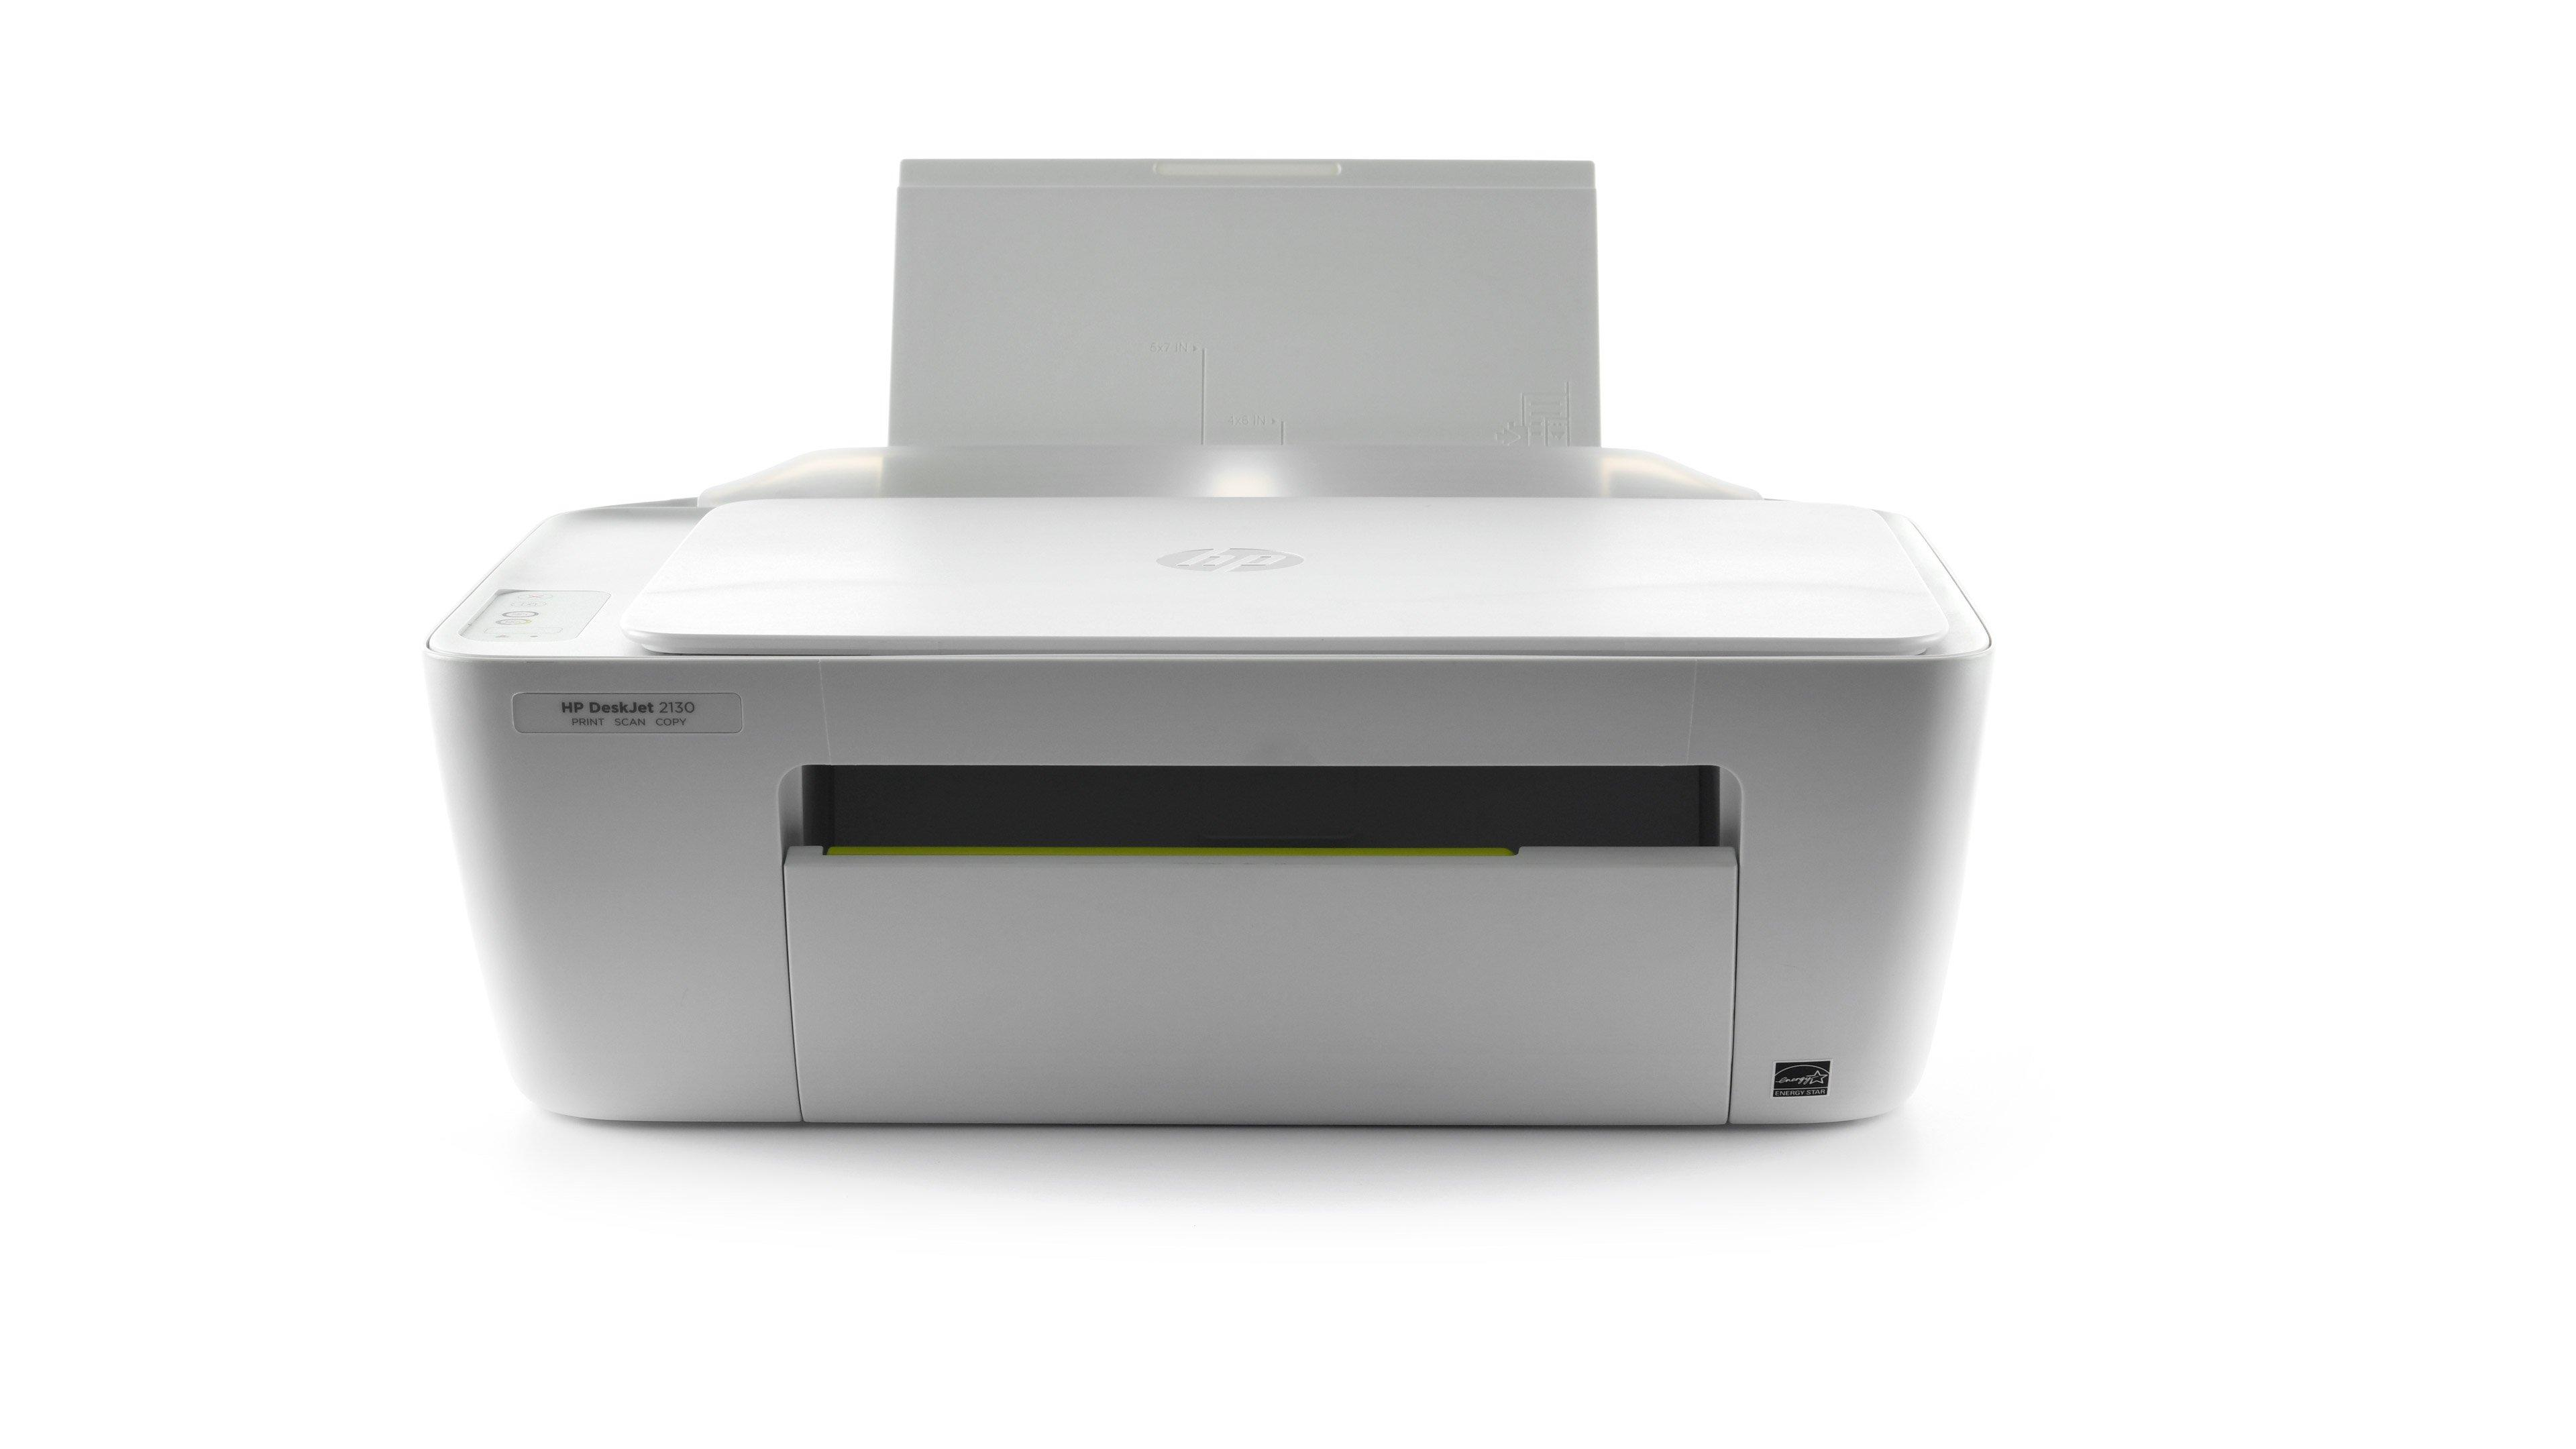 Terrific Hp Deskjet 2130 Aio Printer Print Copy Scan White Extra Saudi Home Interior And Landscaping Ologienasavecom